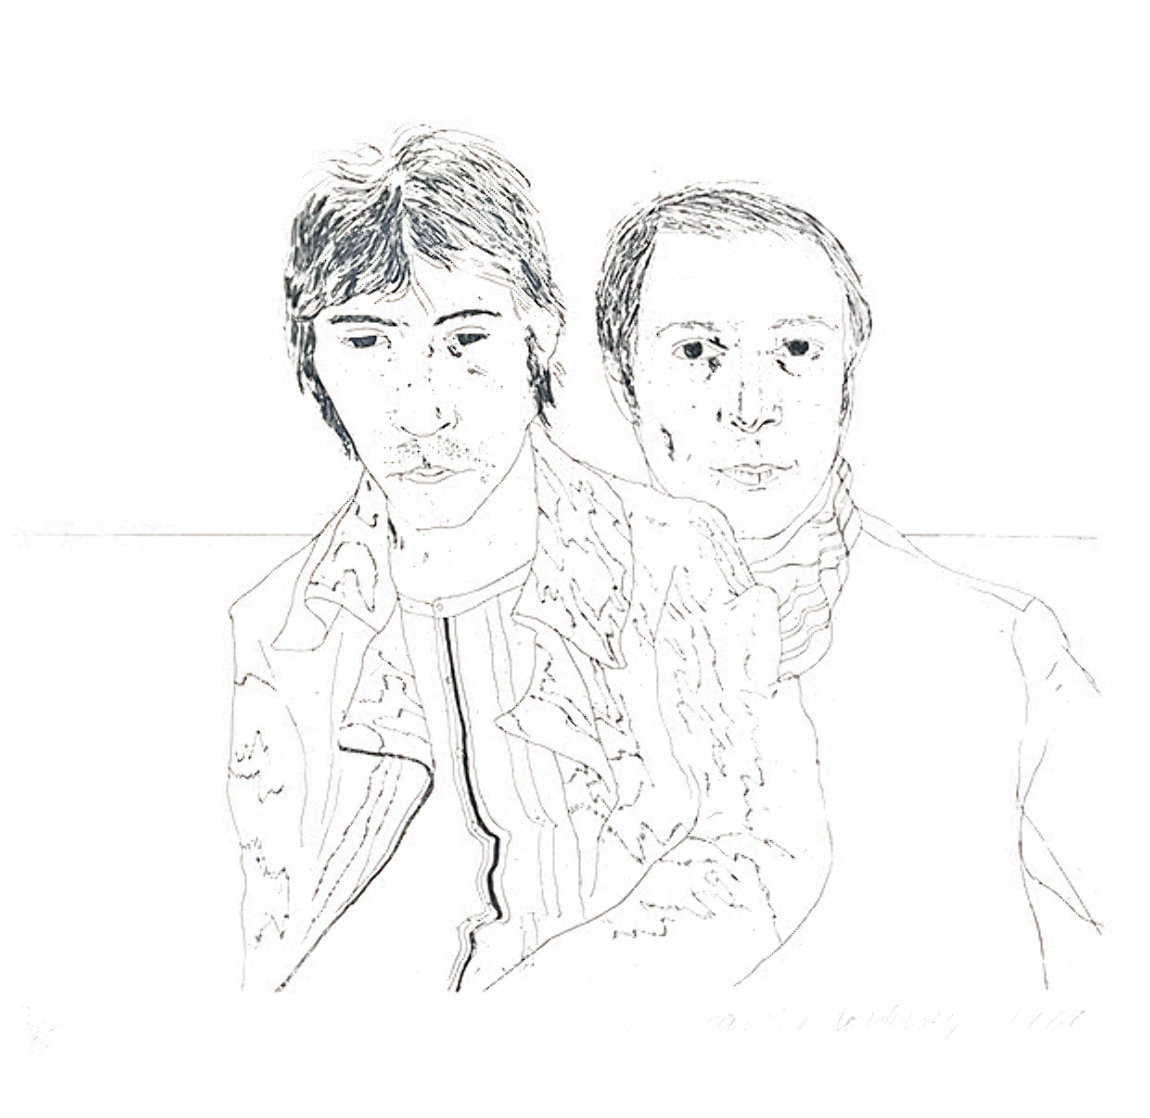 Ossie And Mo 1988 Limited Edition Print by David Hockney